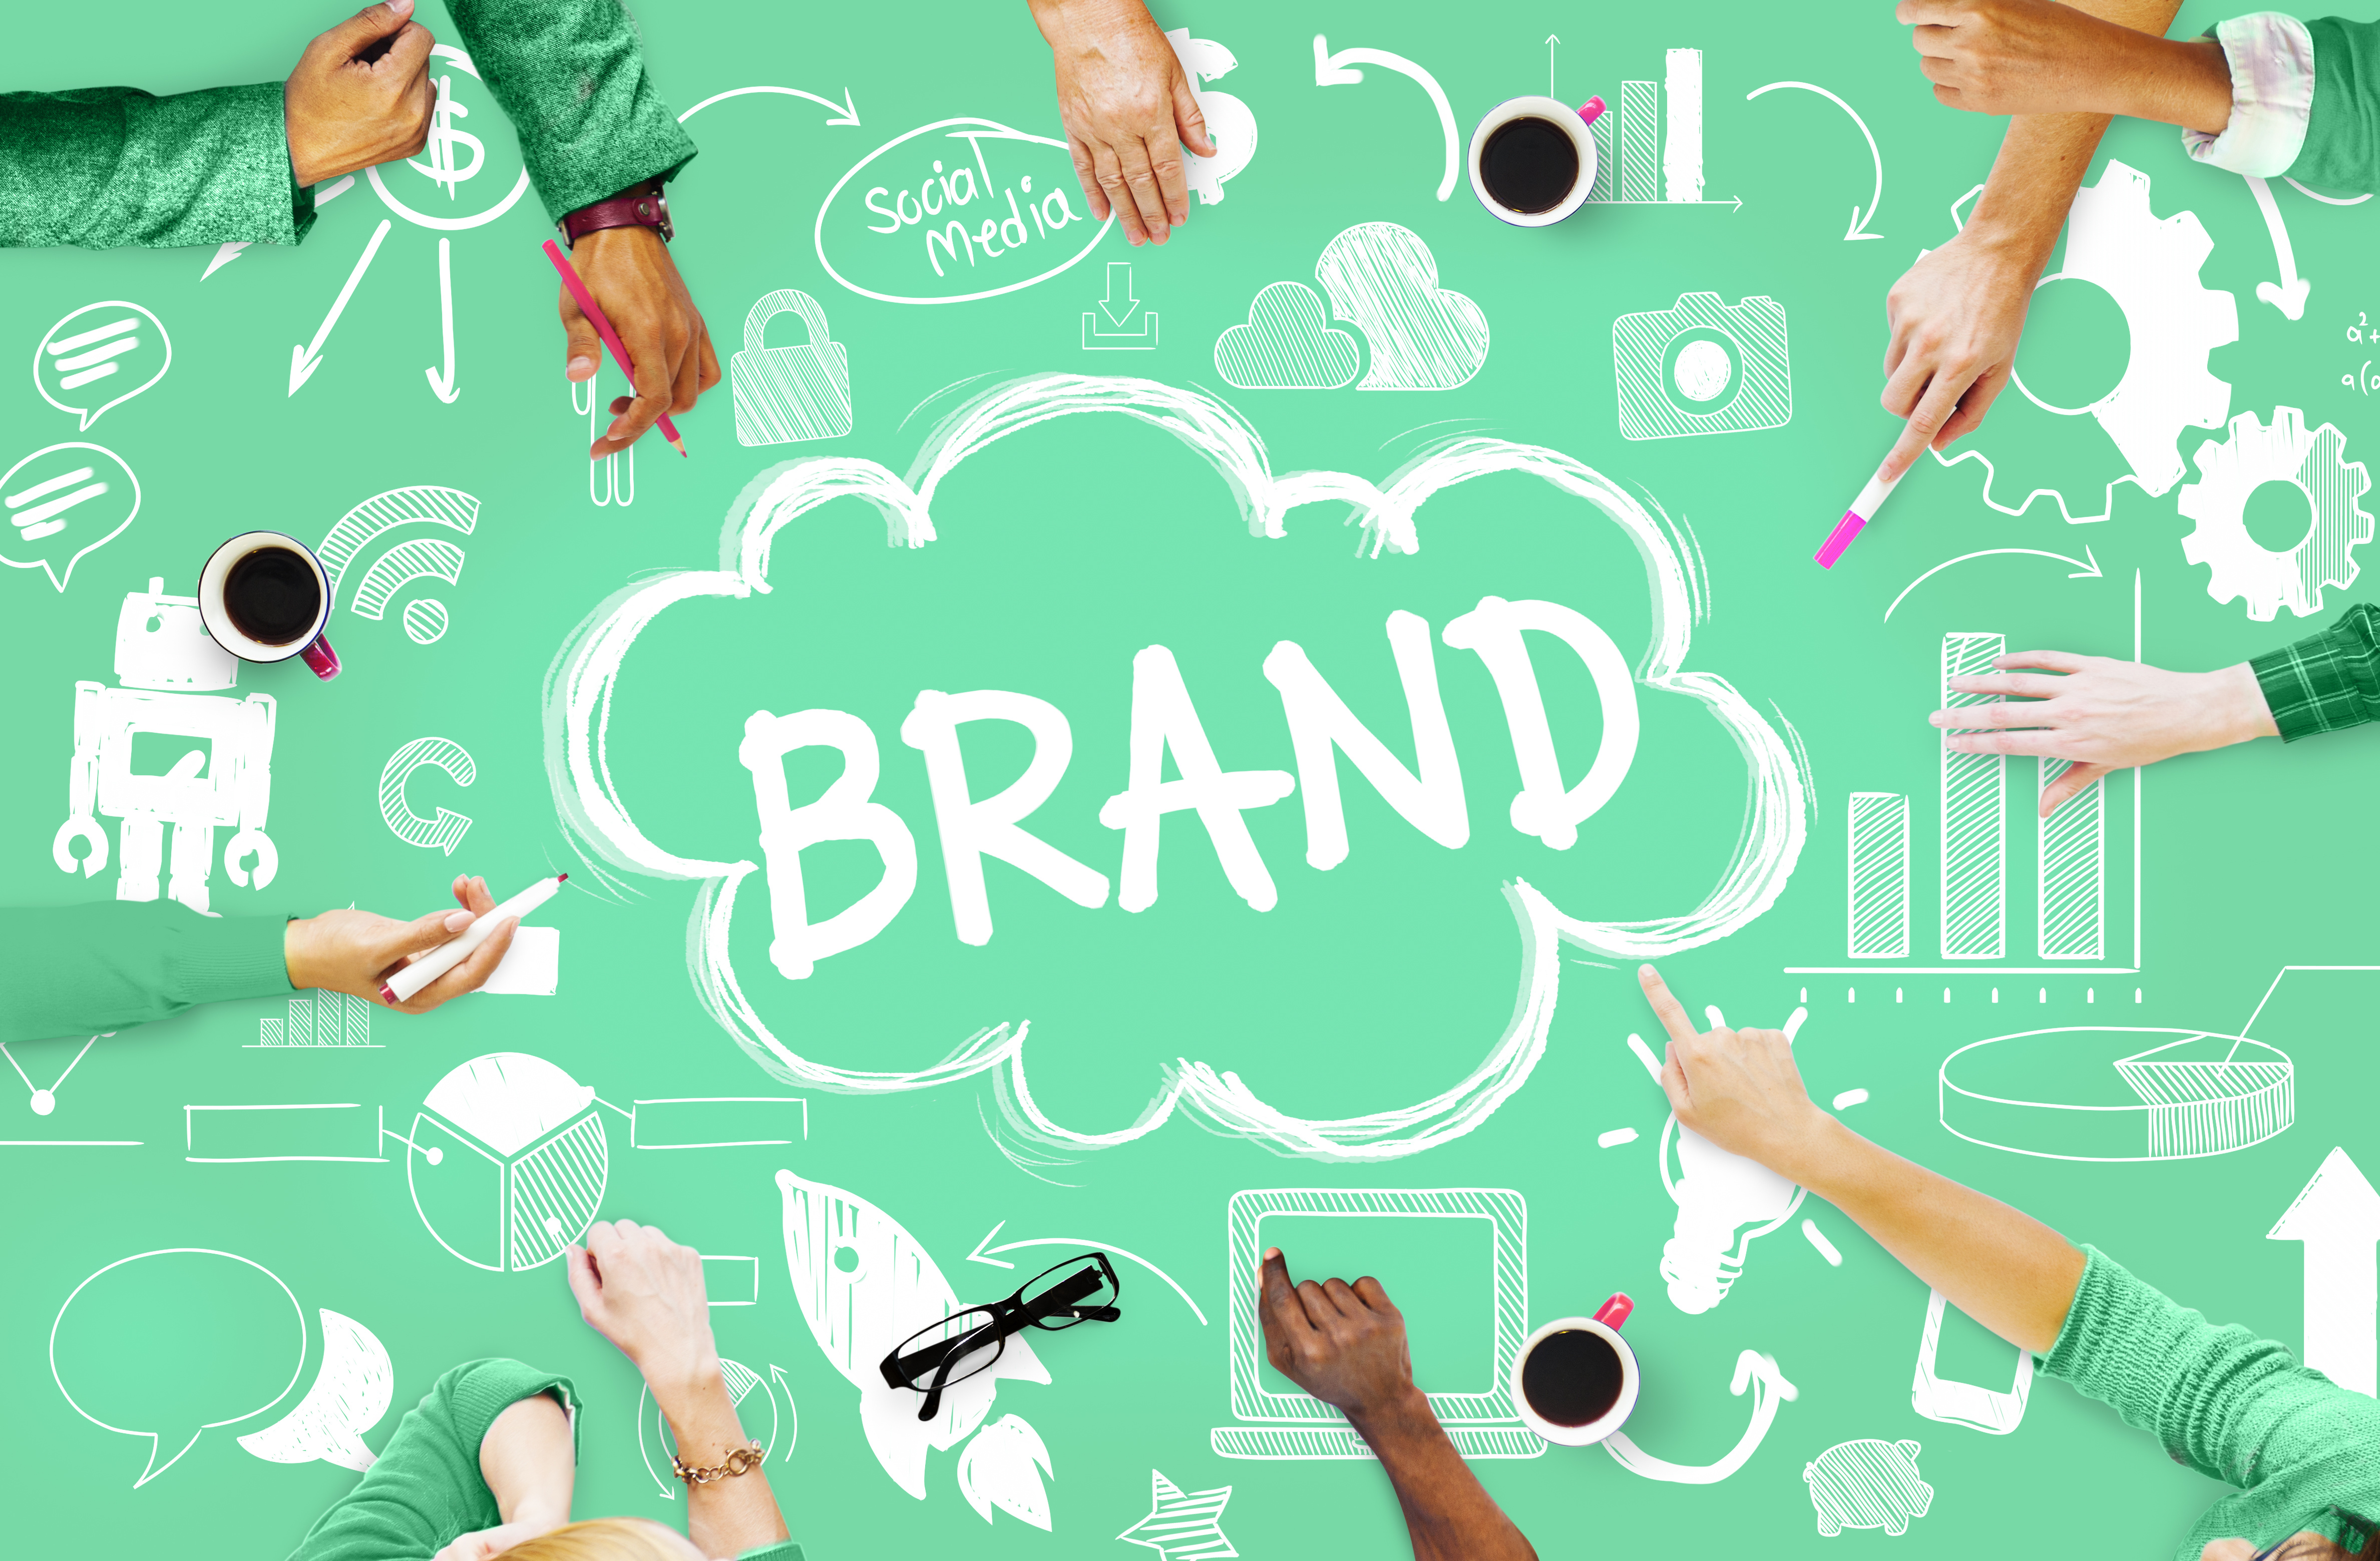 how to build your brand online sponsoredlinx brand commercial marketing product branding concept